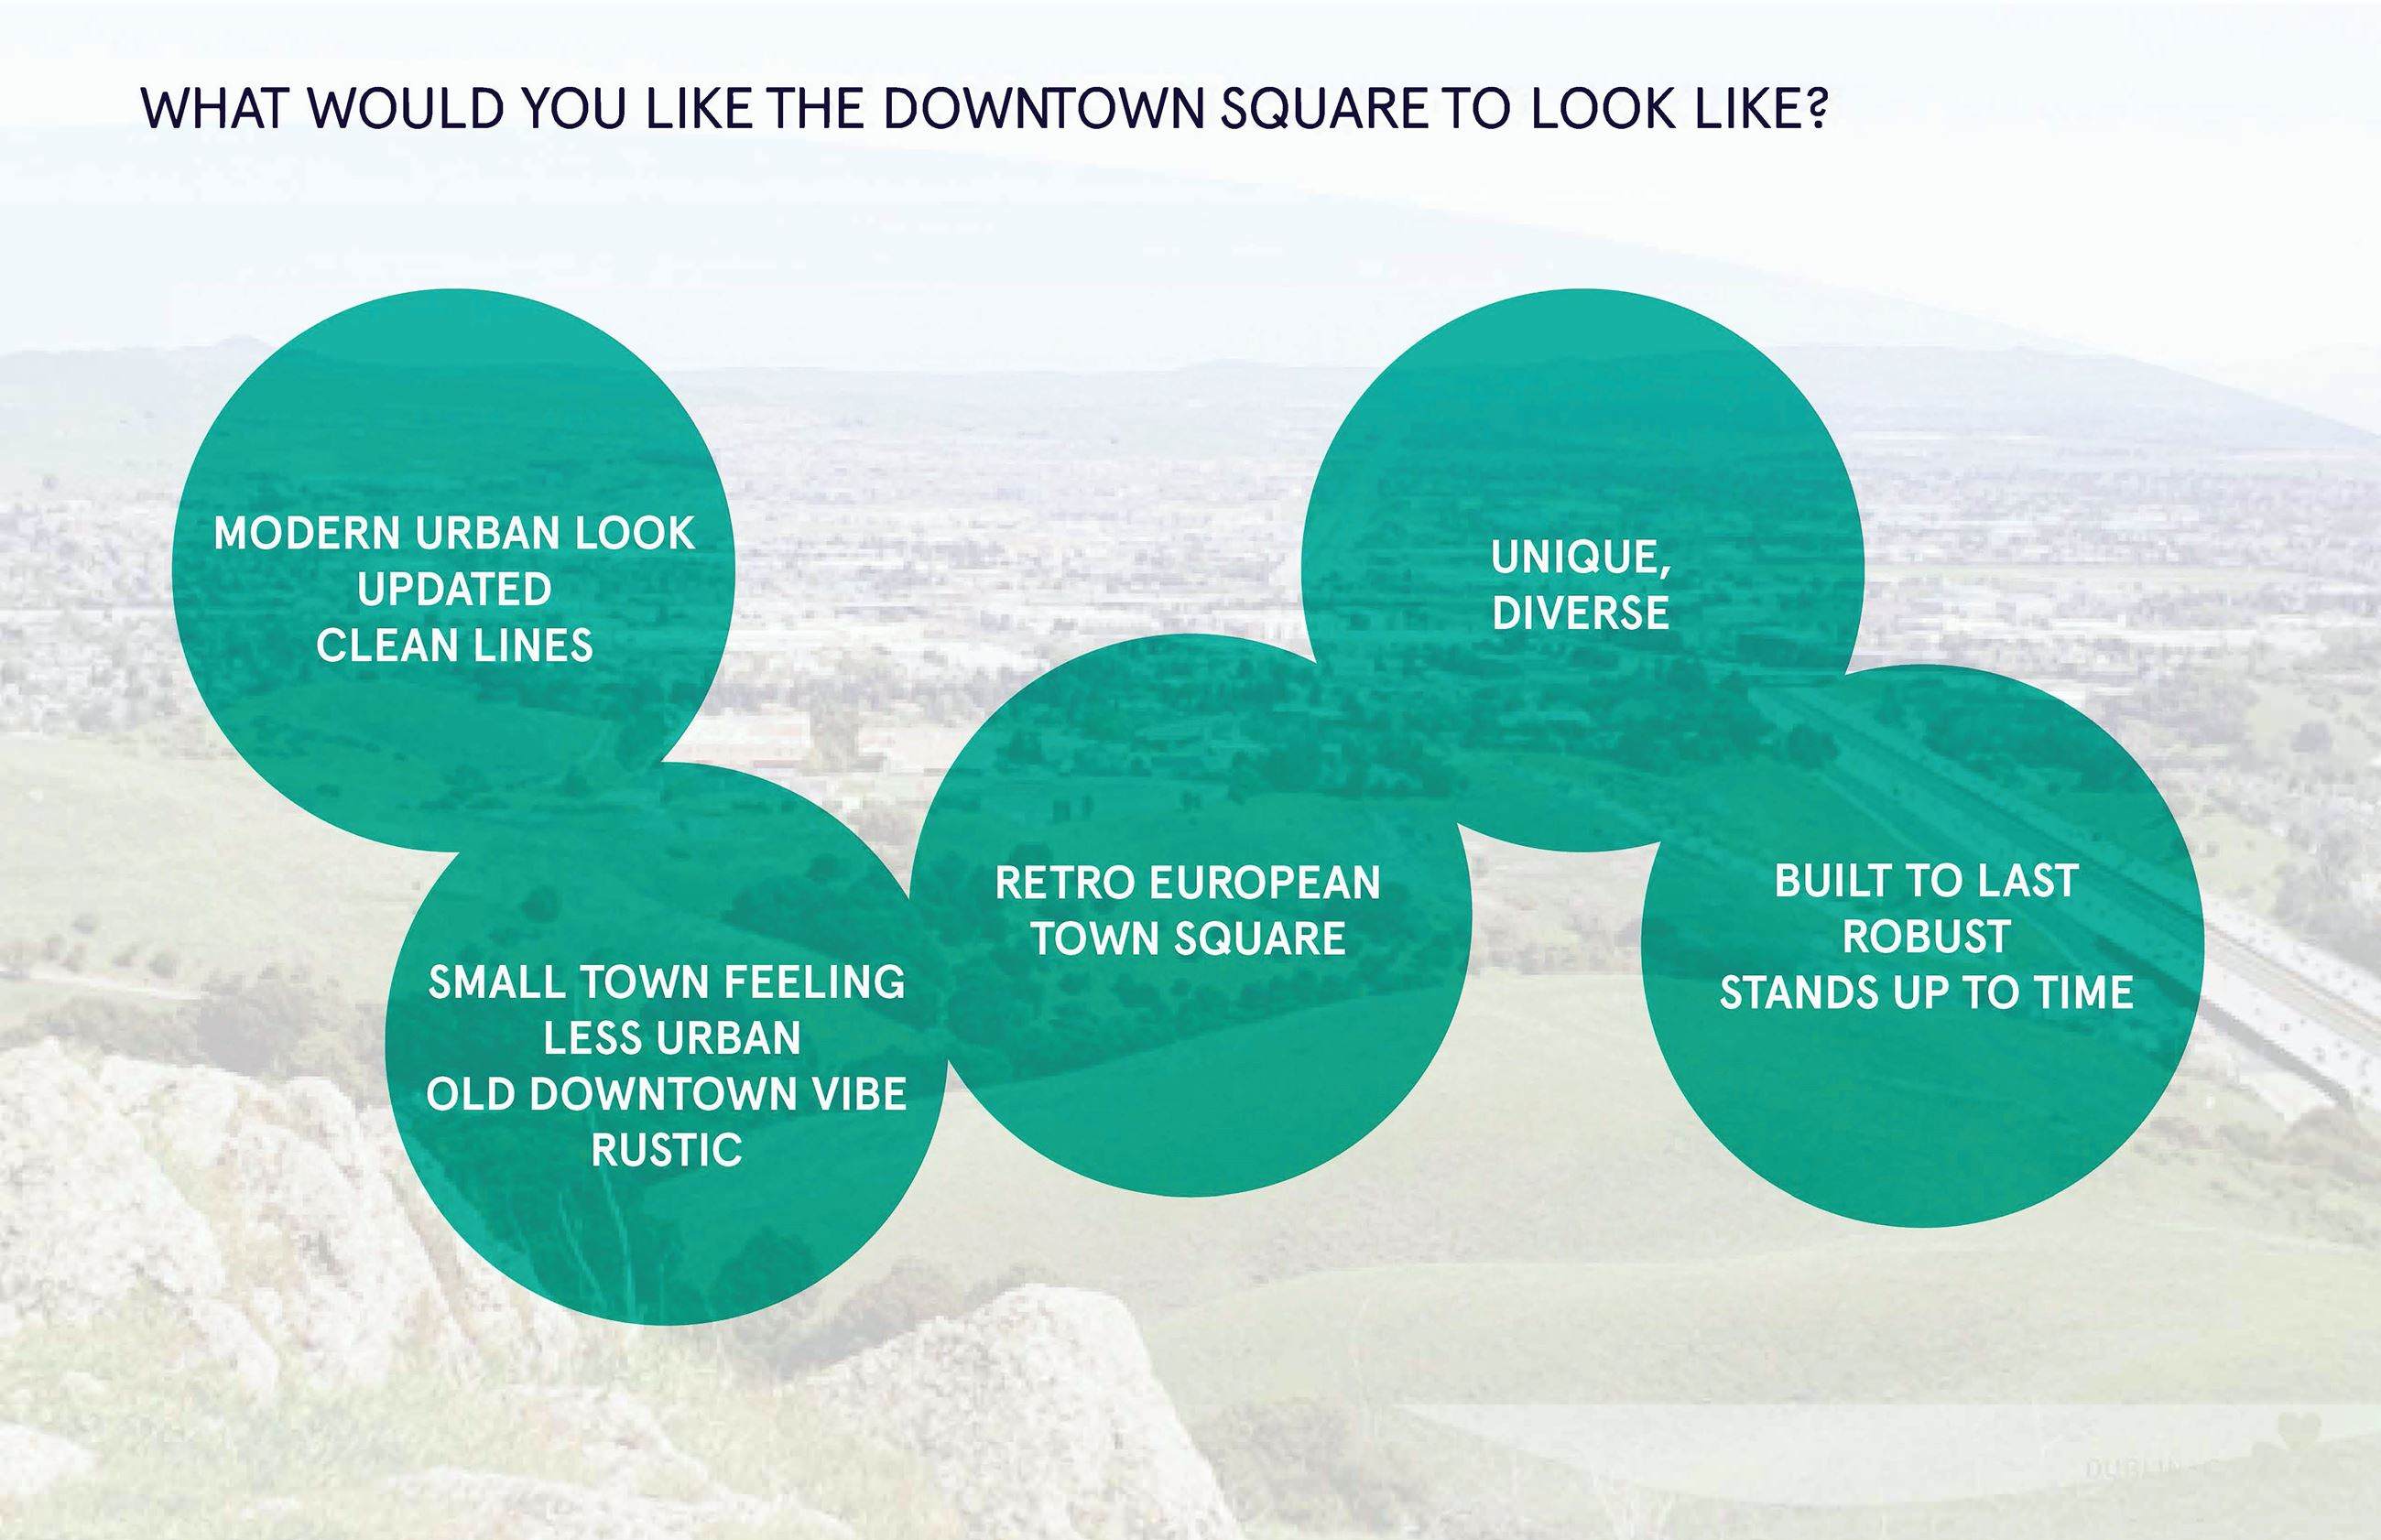 What would you like the Downtown Town Square to look like? Modern urban look/updated clean lines – S